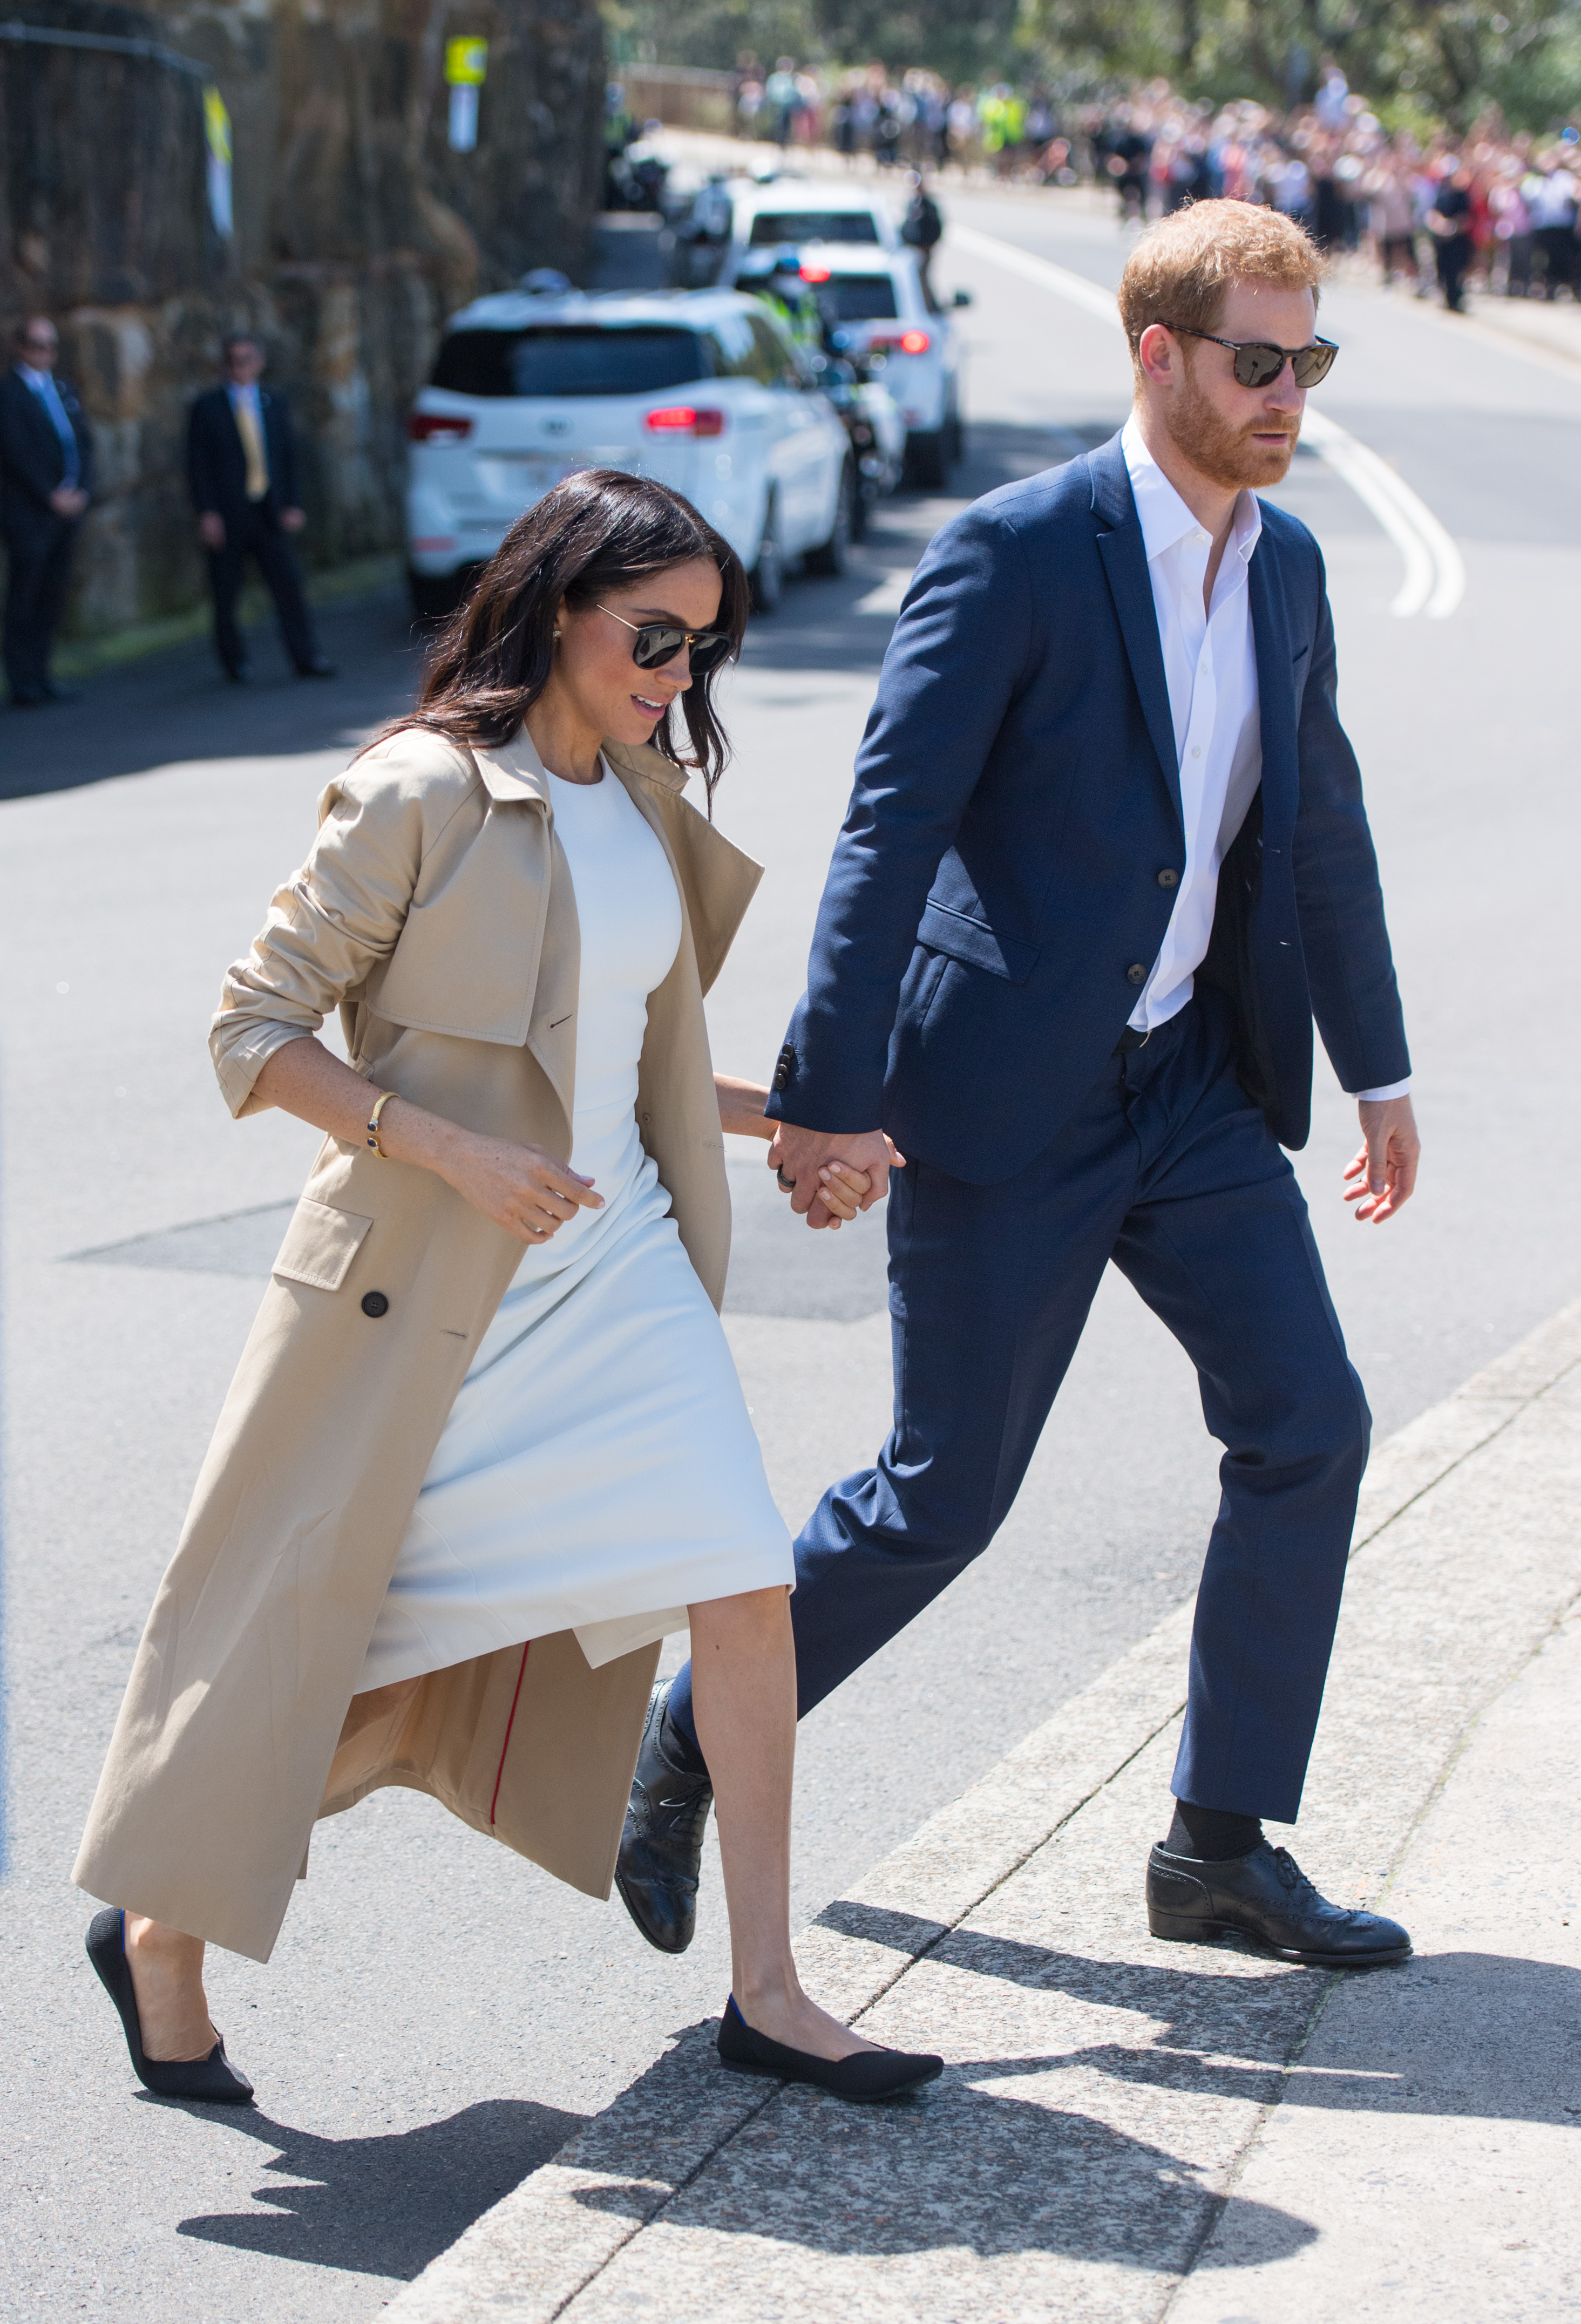 Megan Markle wears Rothy flats in Sydney, Australia (Dominic Lipinski/ Pool/Getty Images)